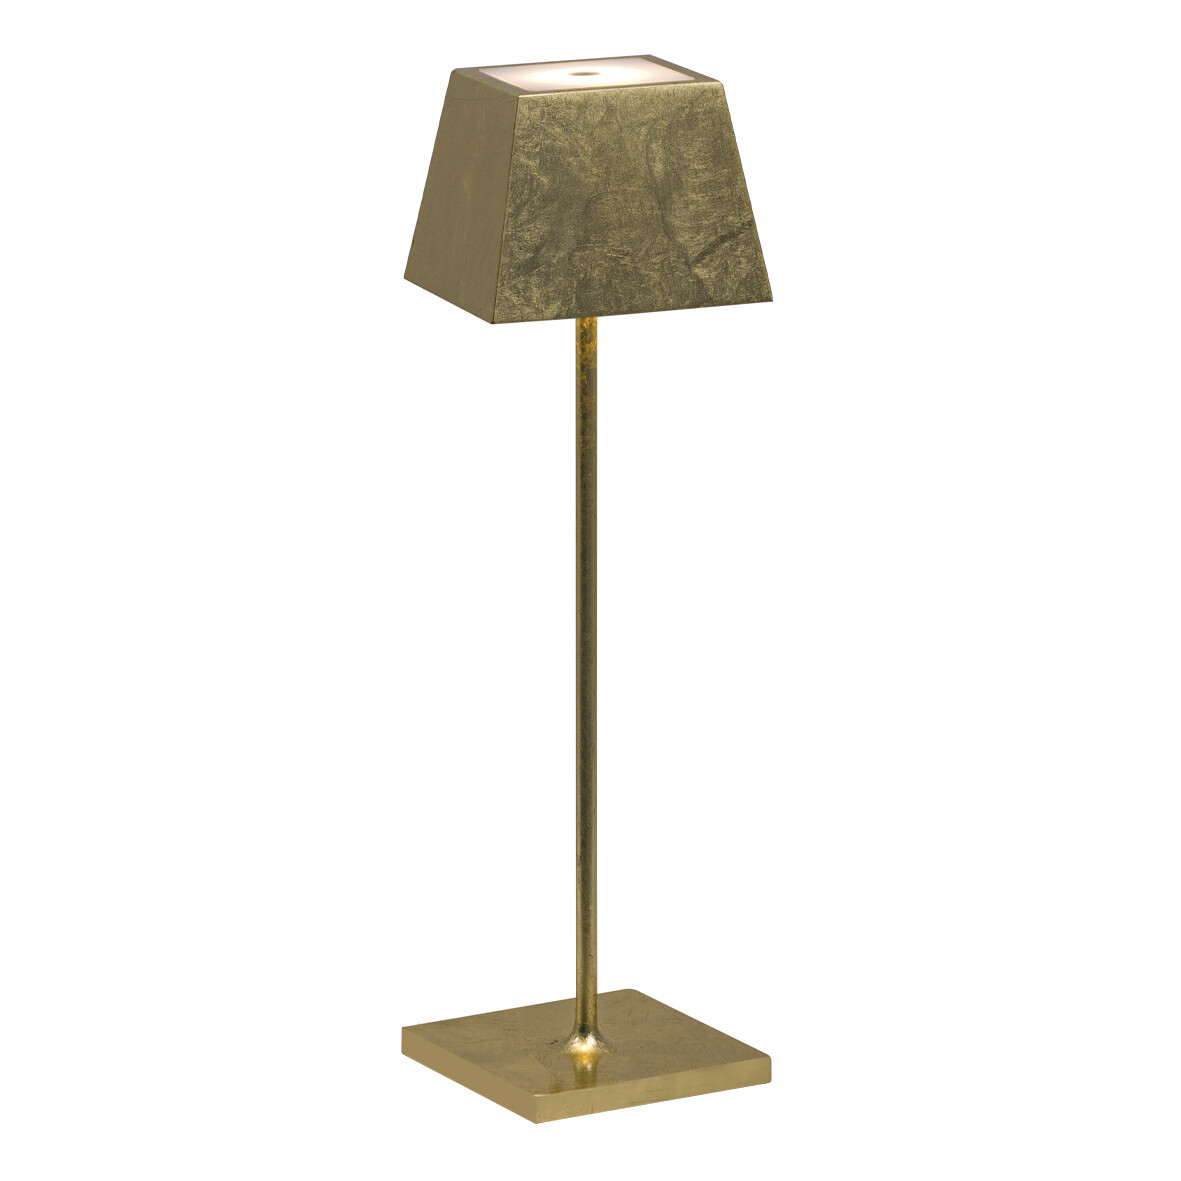 SIESTA LED table lamp gold leaf (2700K), portable and rechargeable